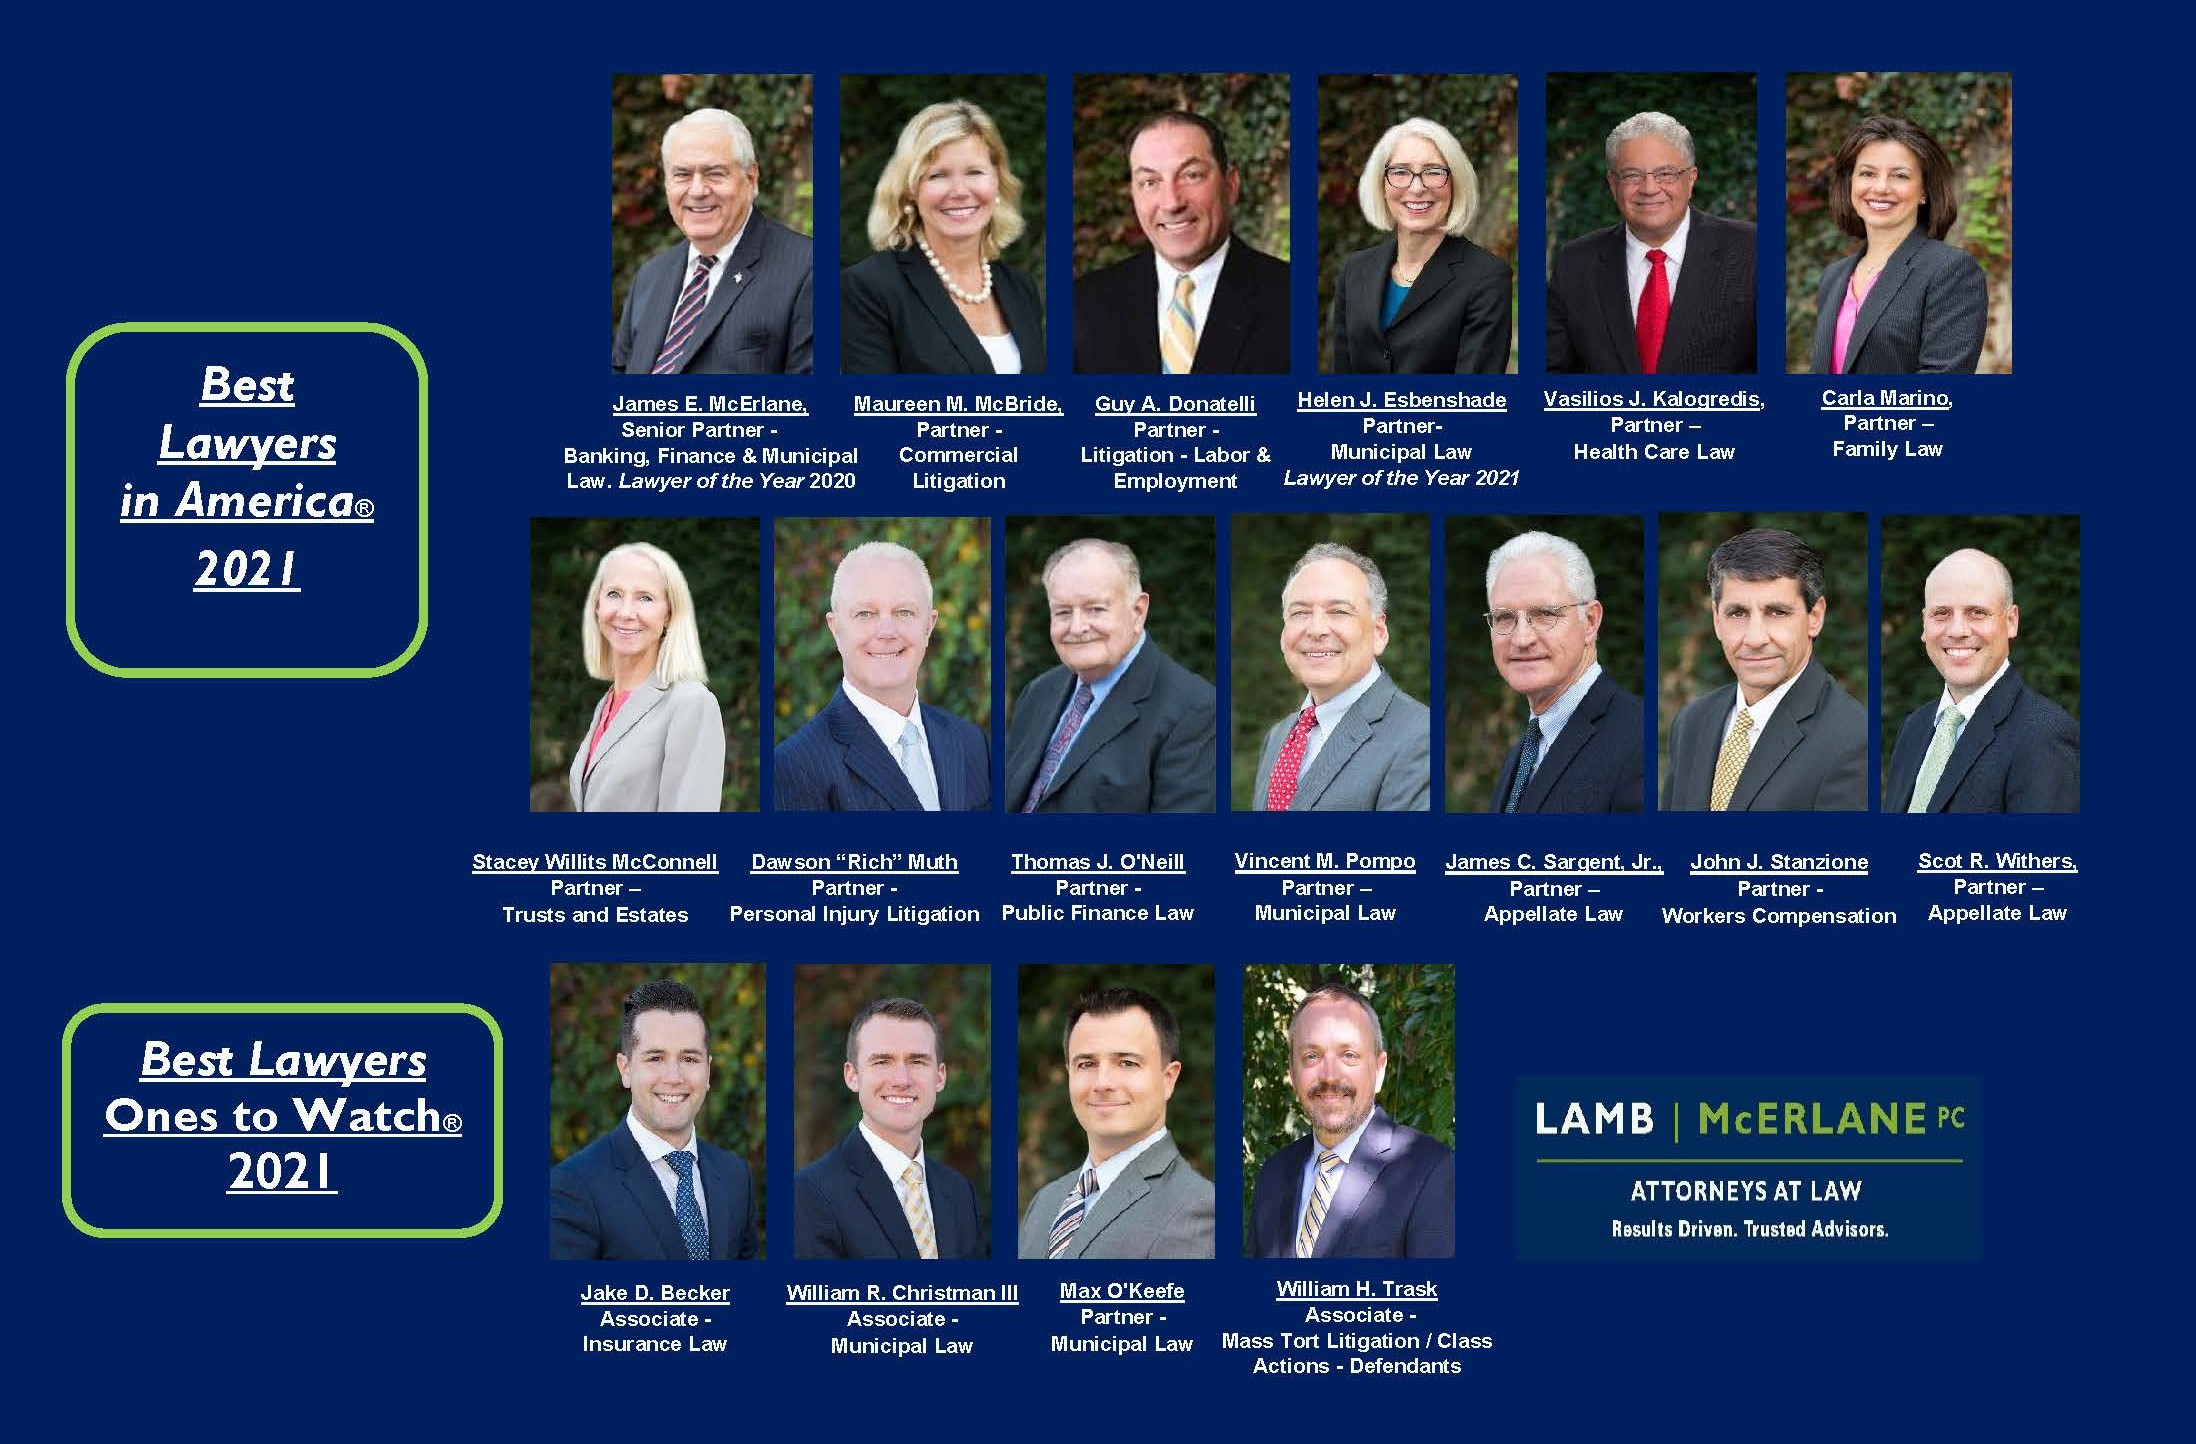 17 Lamb McErlane Attorneys Recognized as Best Lawyers in America, Ones to Watch